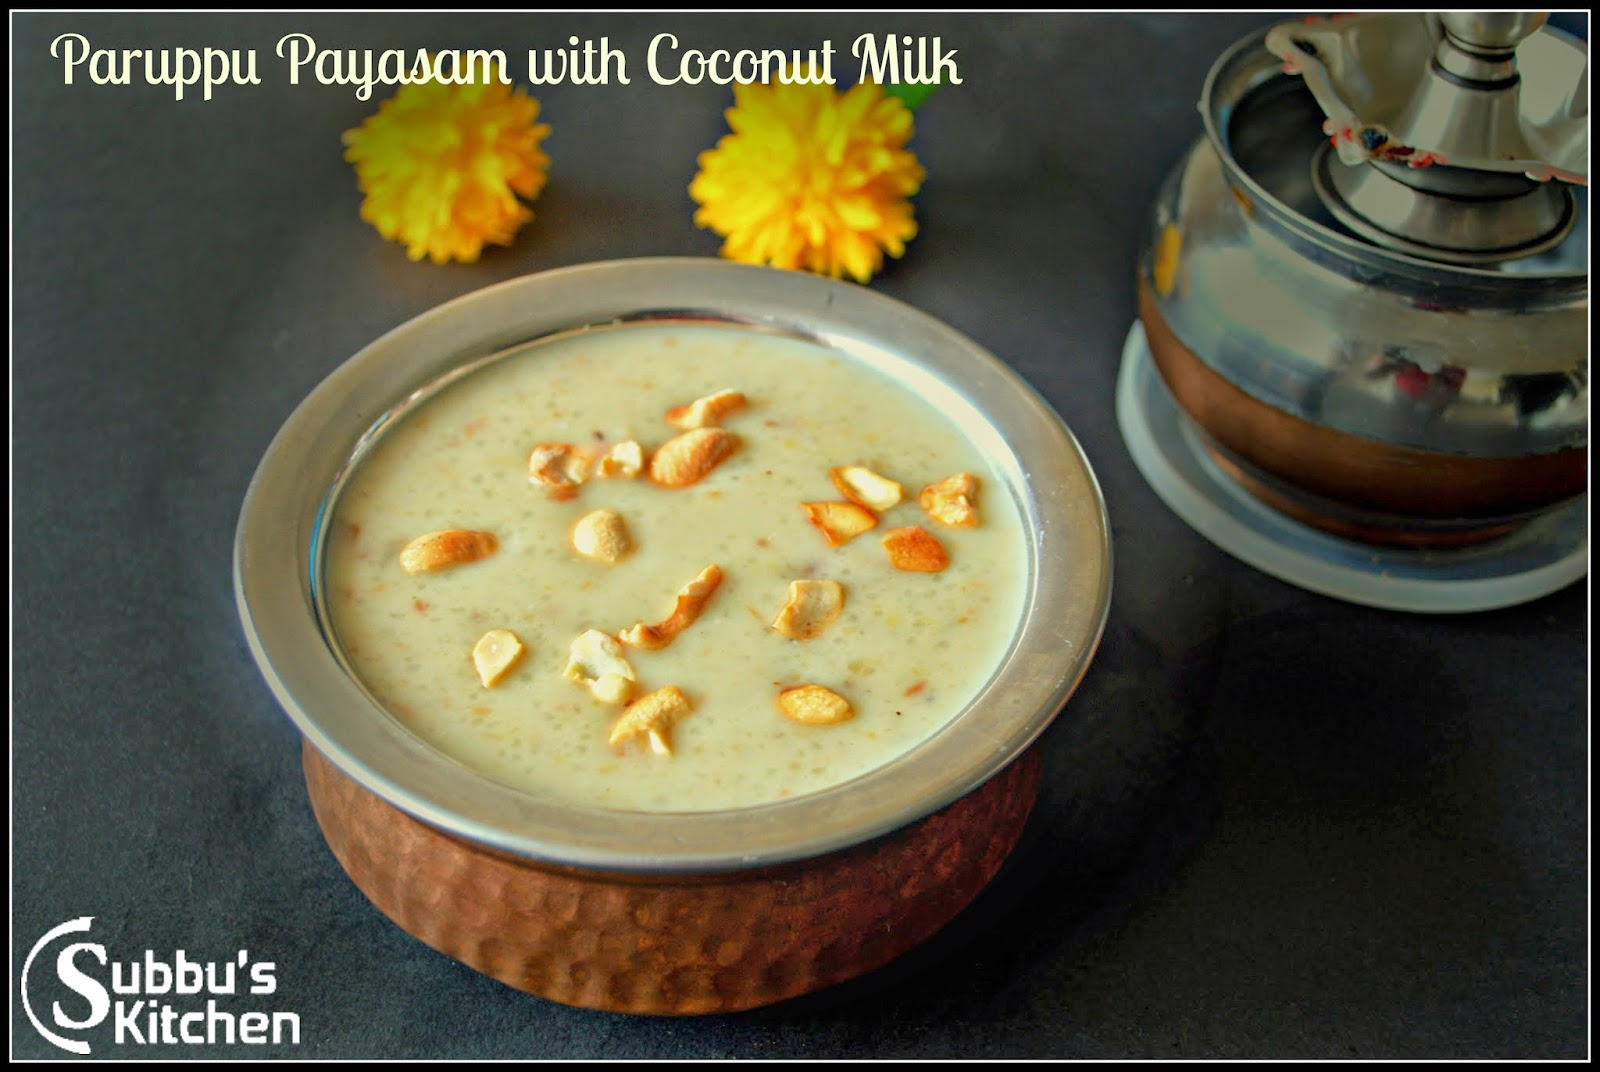 Paruppu Payasam with Cocunut Milk